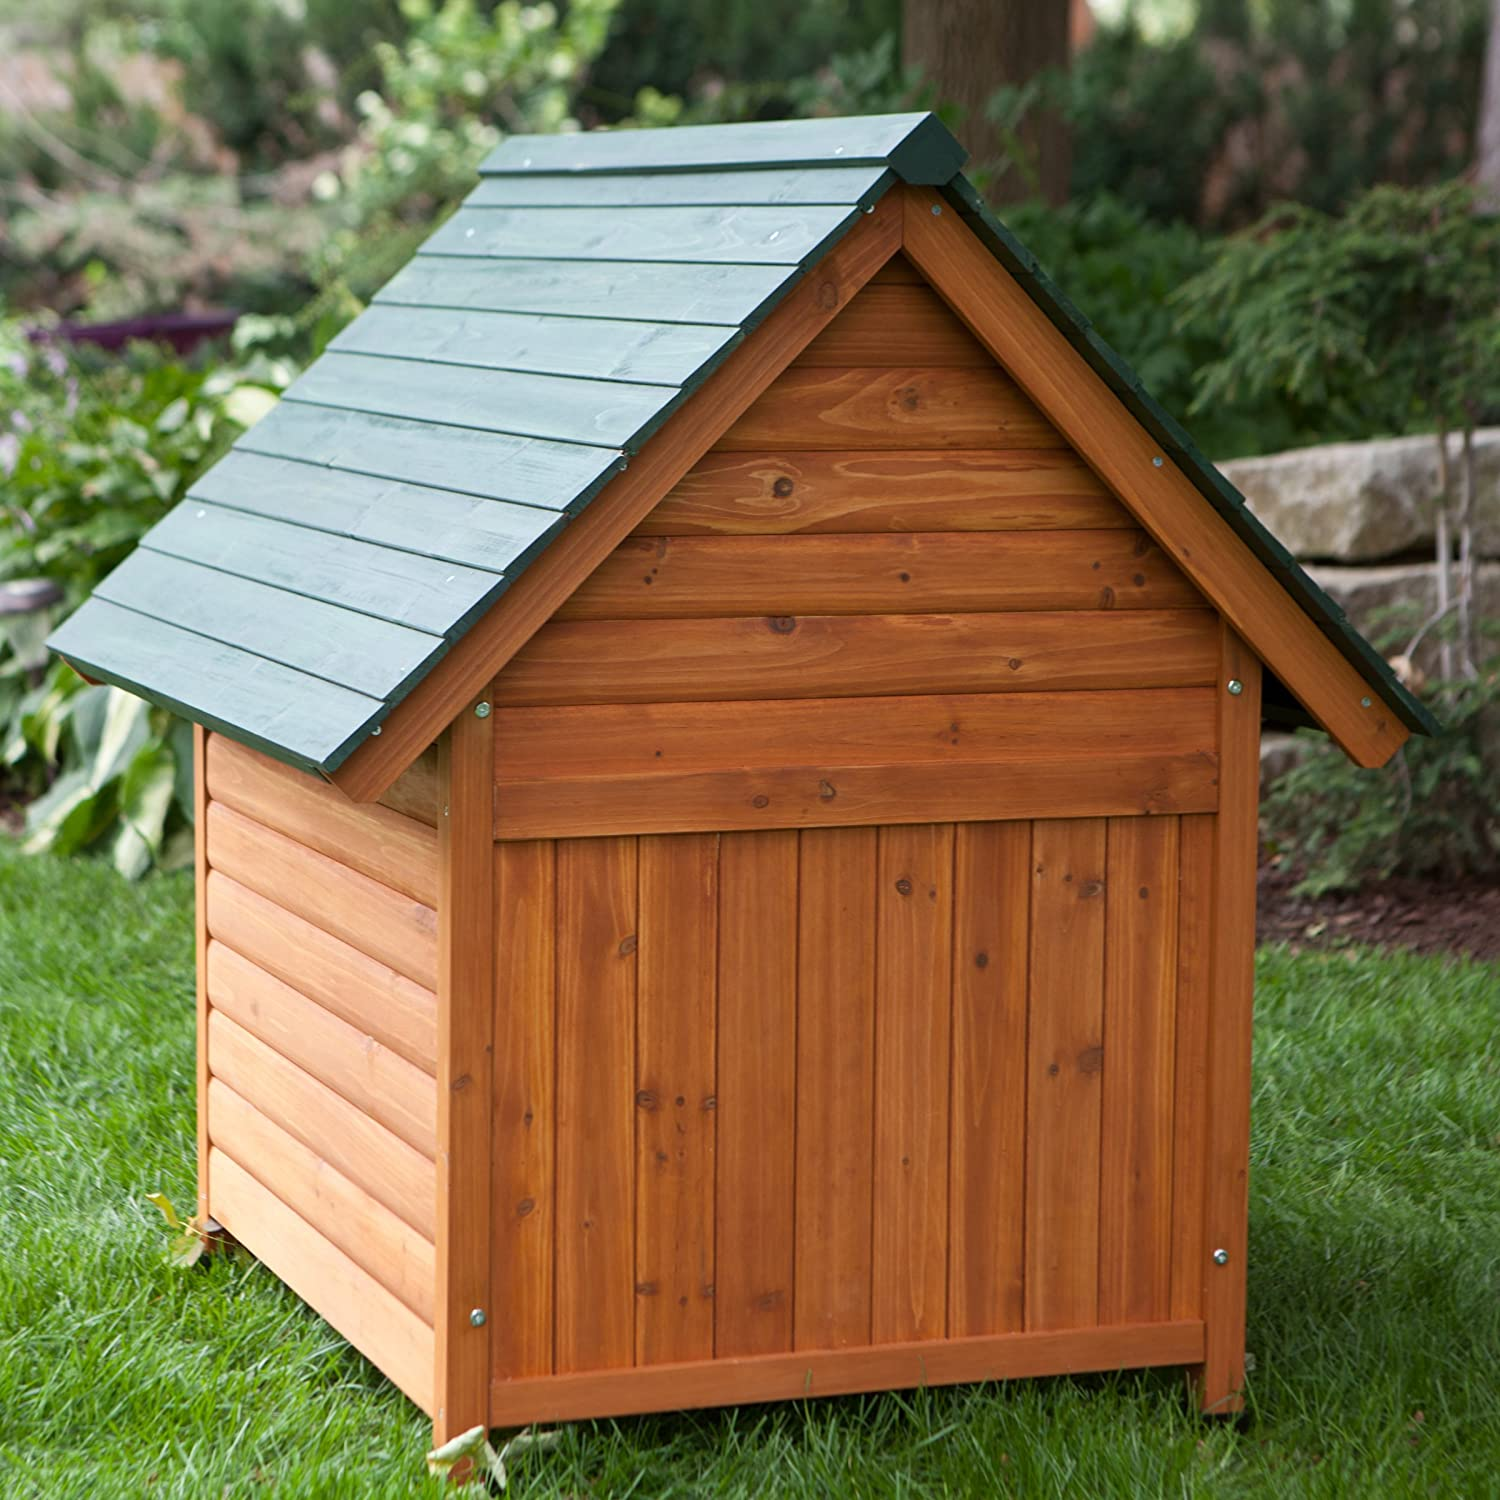 Outdoor dog kennelsoutdoor dog kennels outdoor wooden for Outdoor dog kennel kits